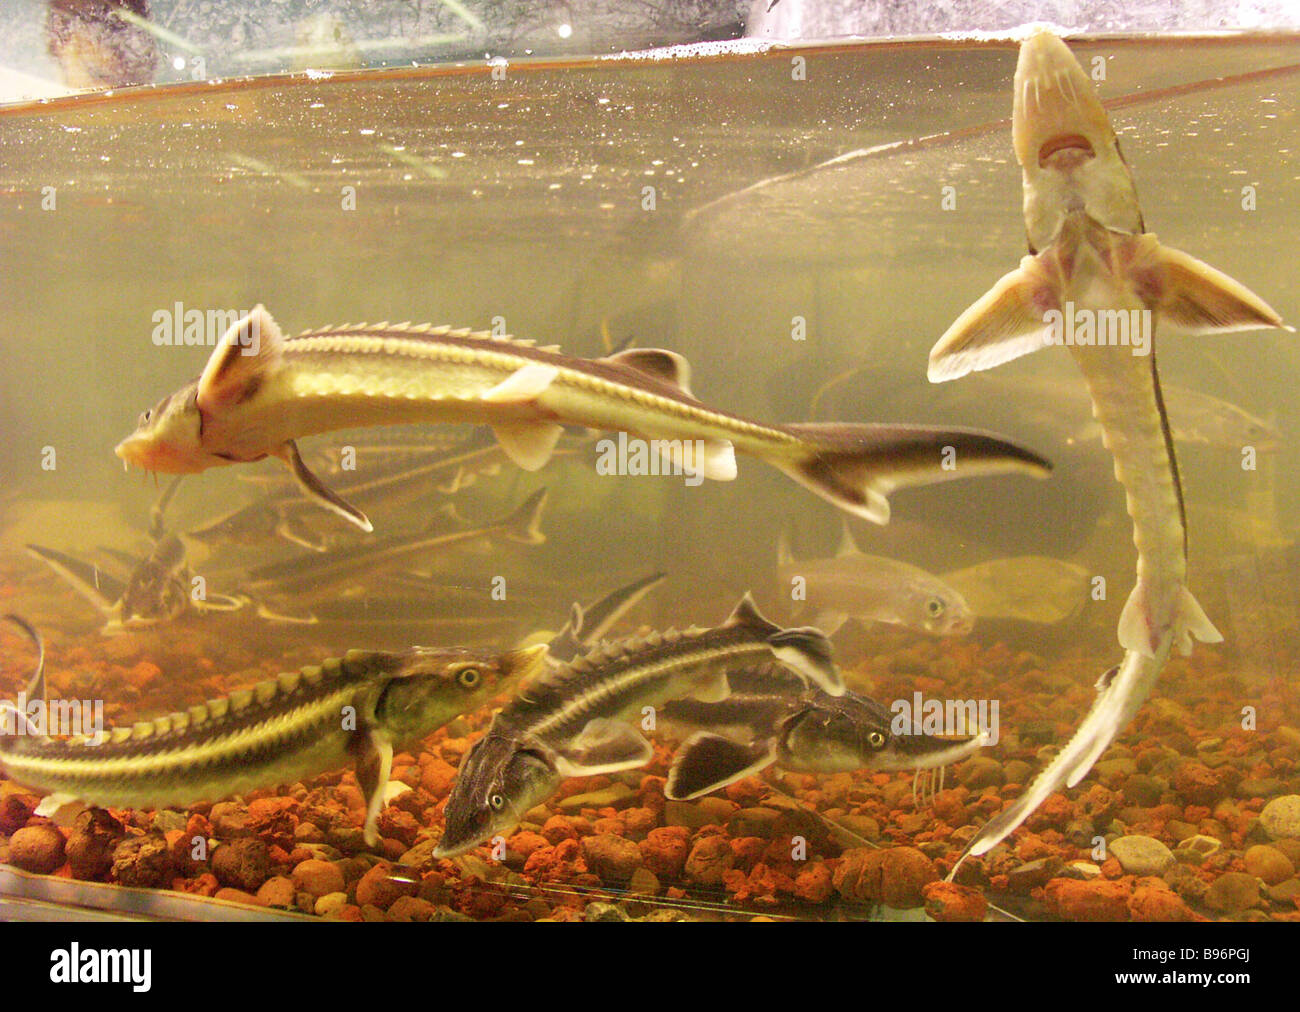 At the 4th international exposition Fish 2004 - Stock Image